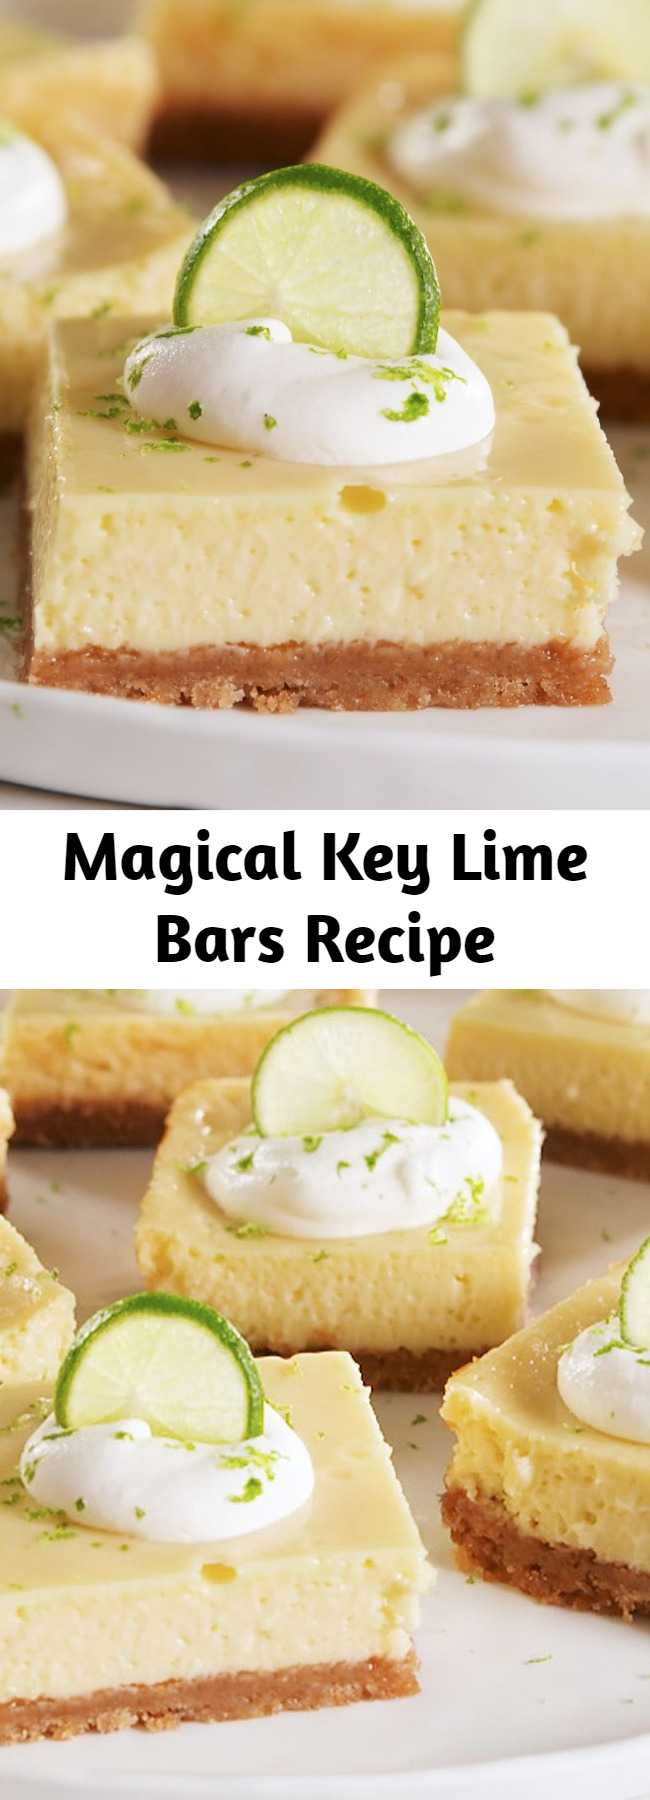 Magical Key Lime Bars Recipe - No added sugar is needed in these bars! The ever-magical sweetened condensed milk provides all the sugar you need. #easyrecipe #dessert #baking #keylime #sweets